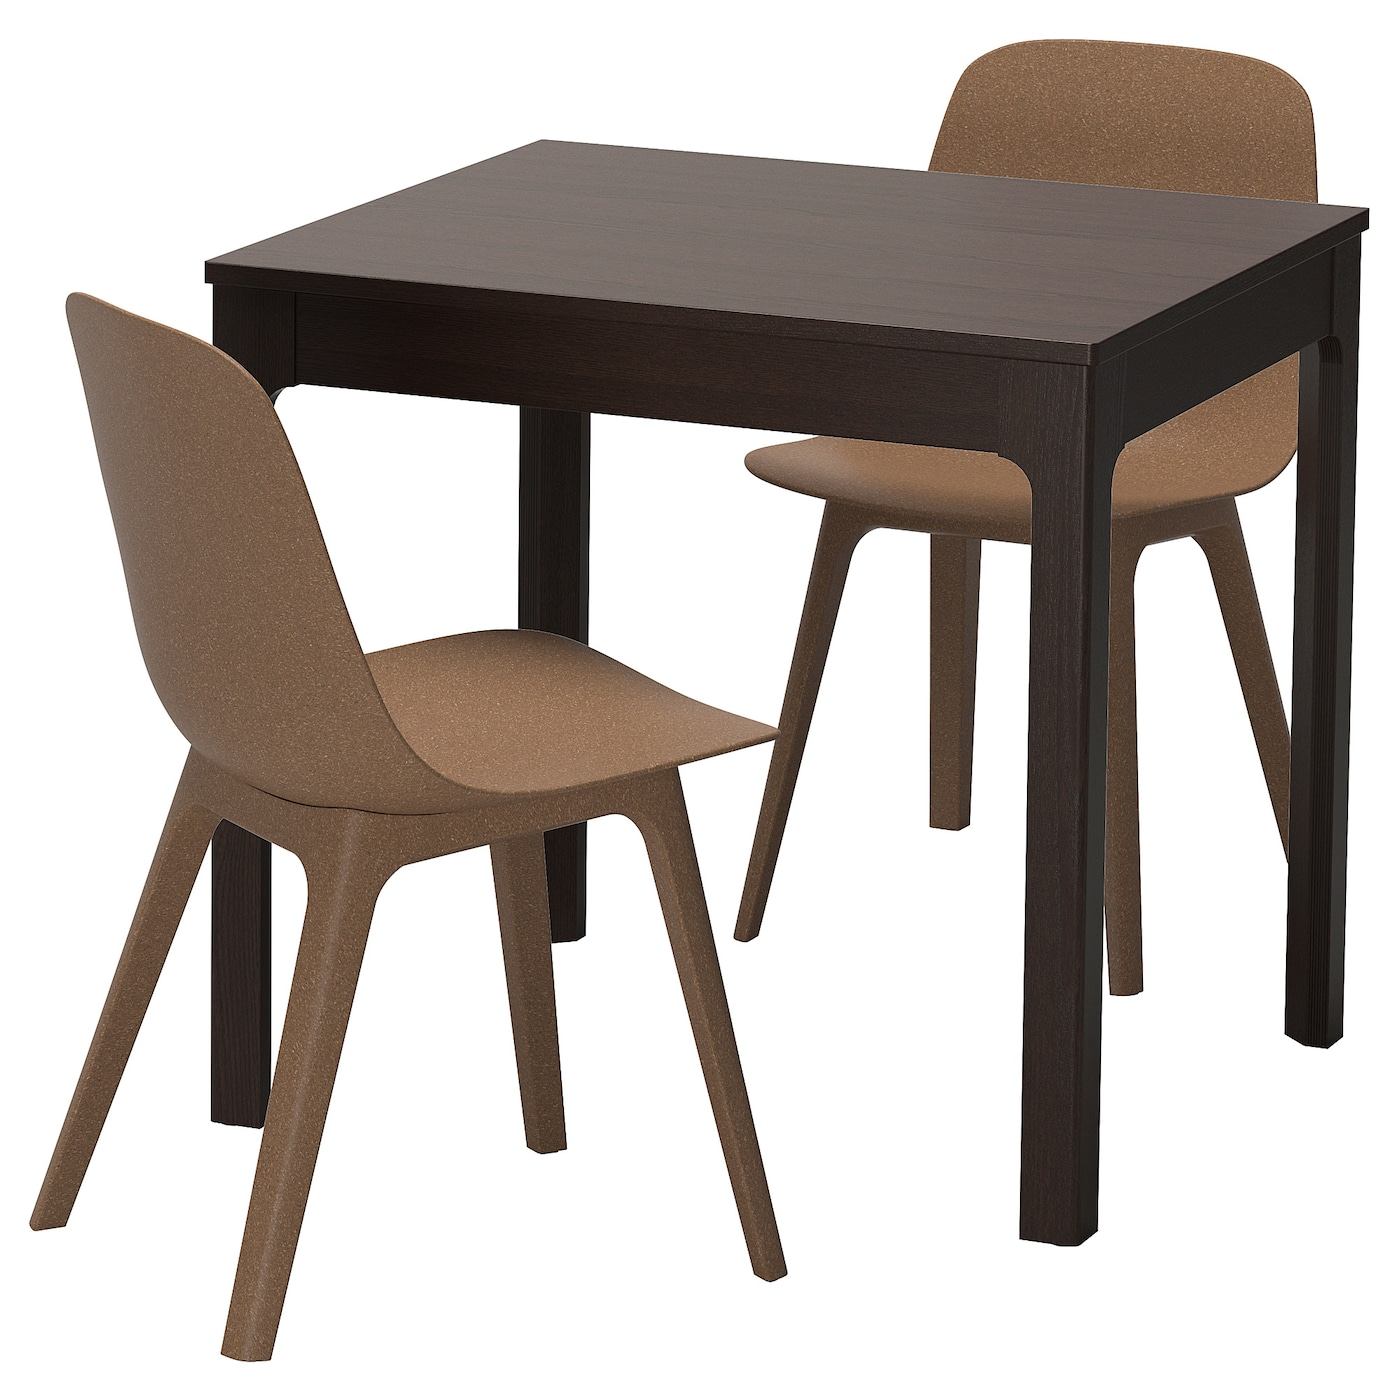 Ikea Odger Ekedalen Table And 2 Chairs Can Be Easily Extended By One Person